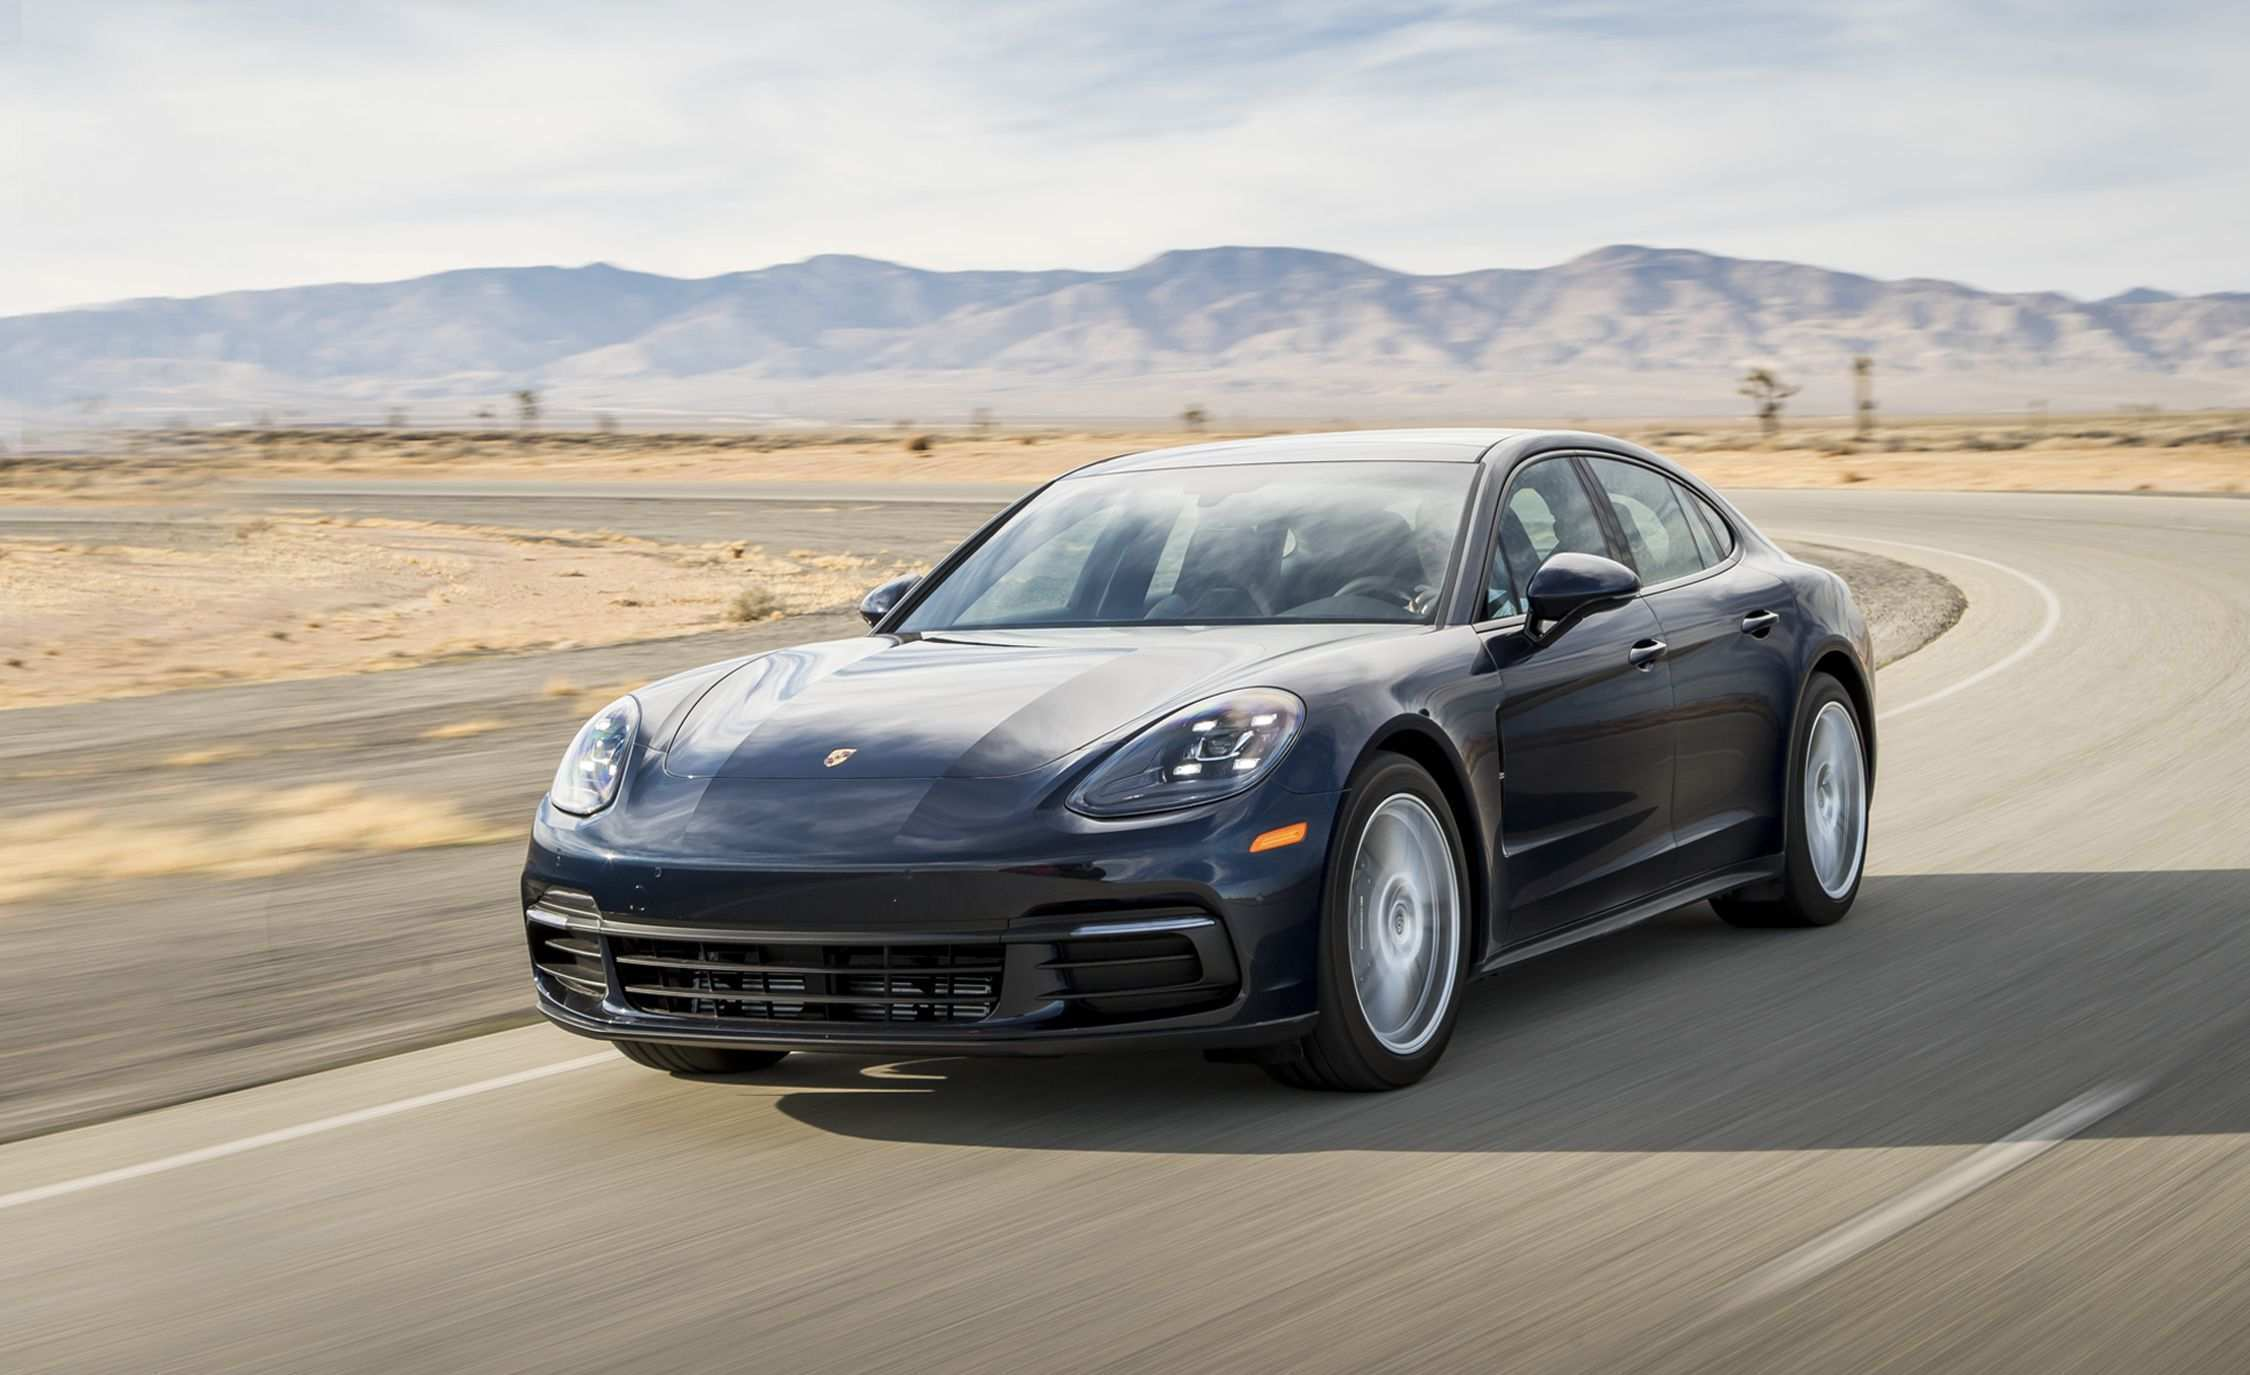 68 The Best 2020 The Porsche Panamera Review